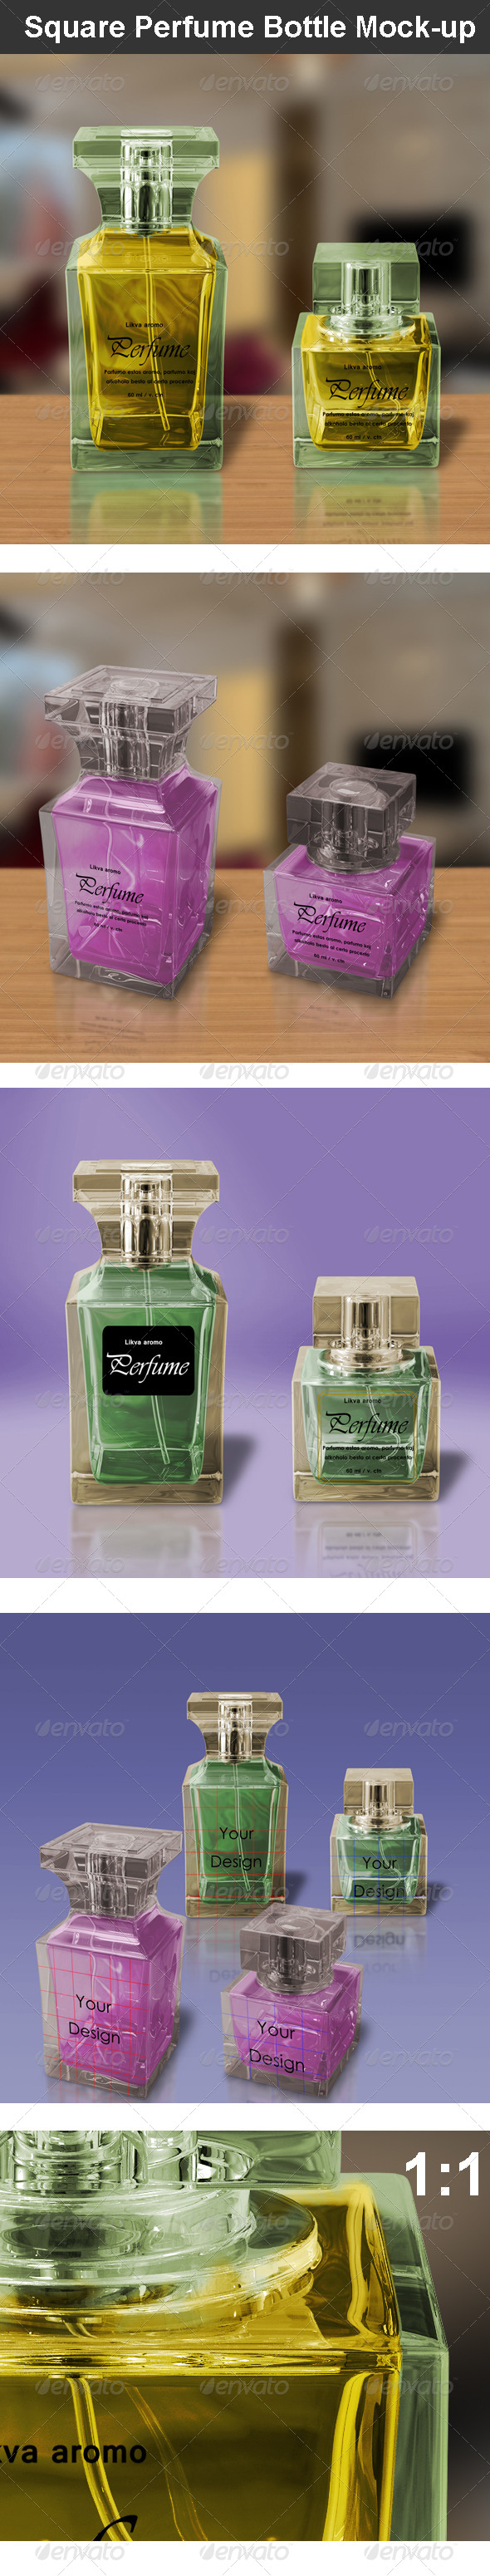 GraphicRiver Square Perfume Bottle Mock-up 6648457